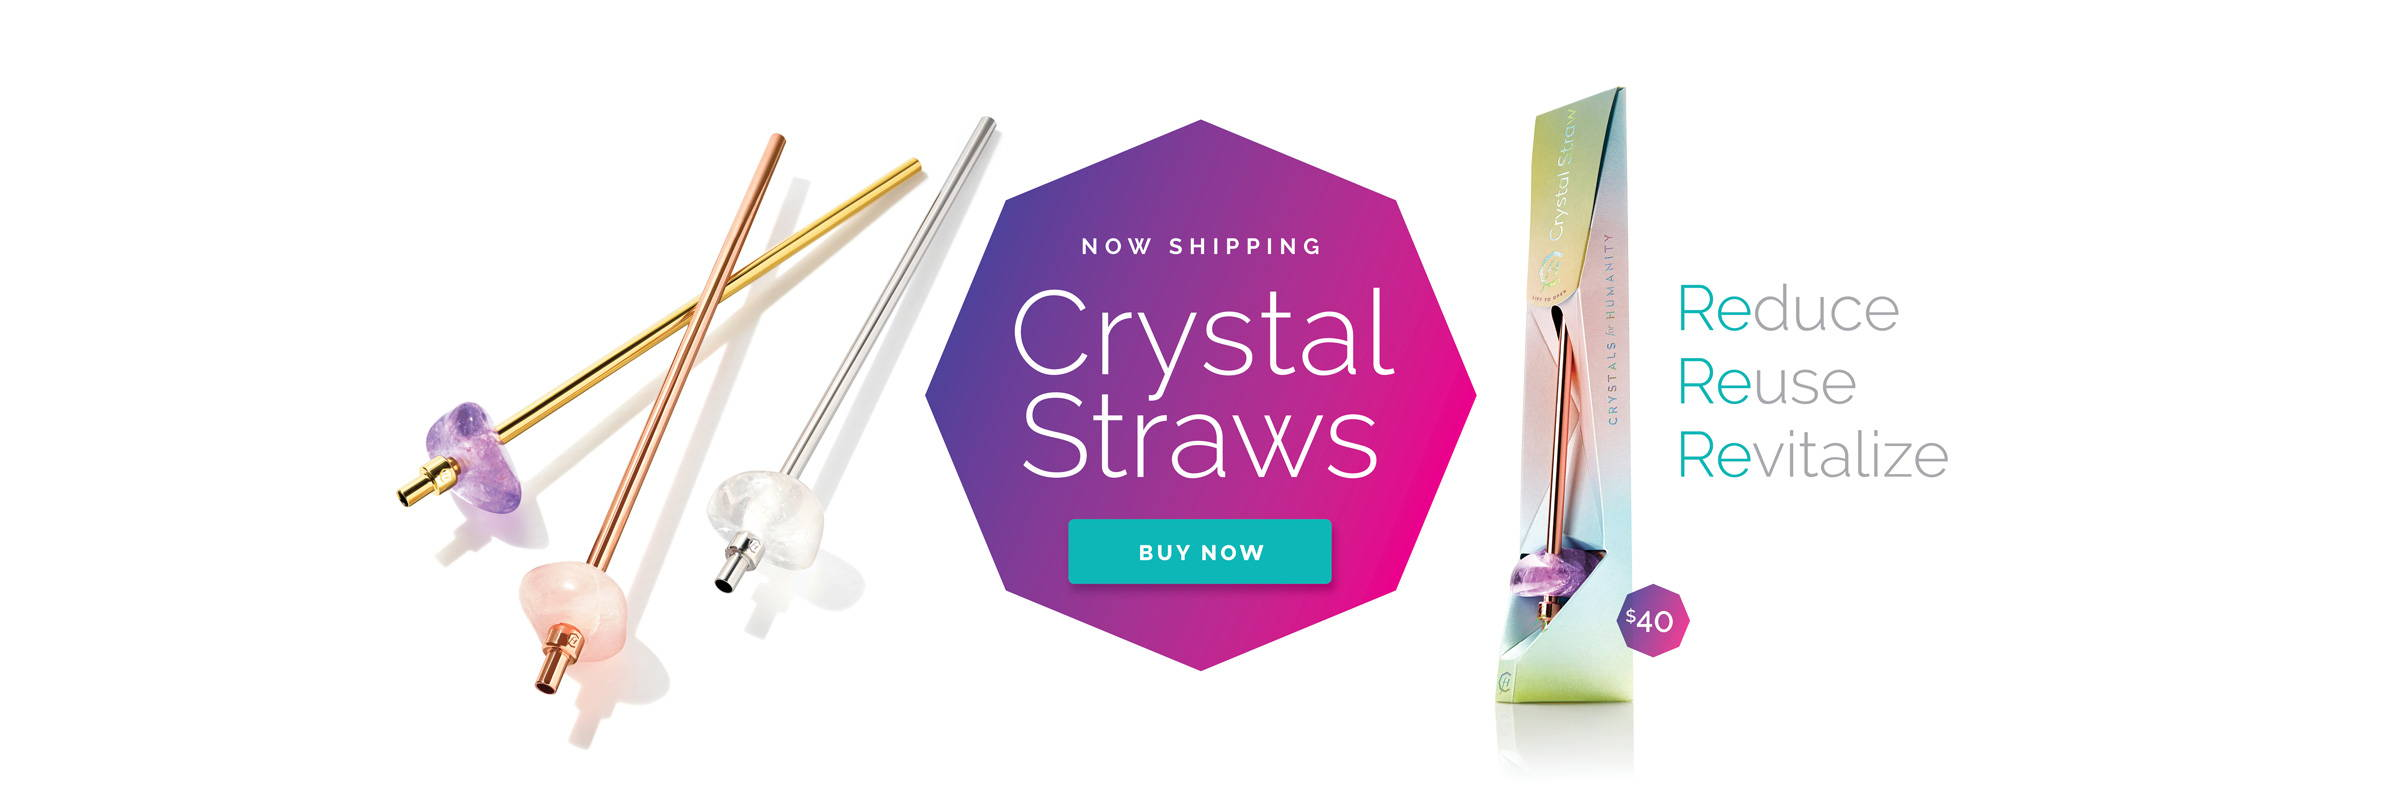 Crystals for Humanity Reusable Crystal Straws